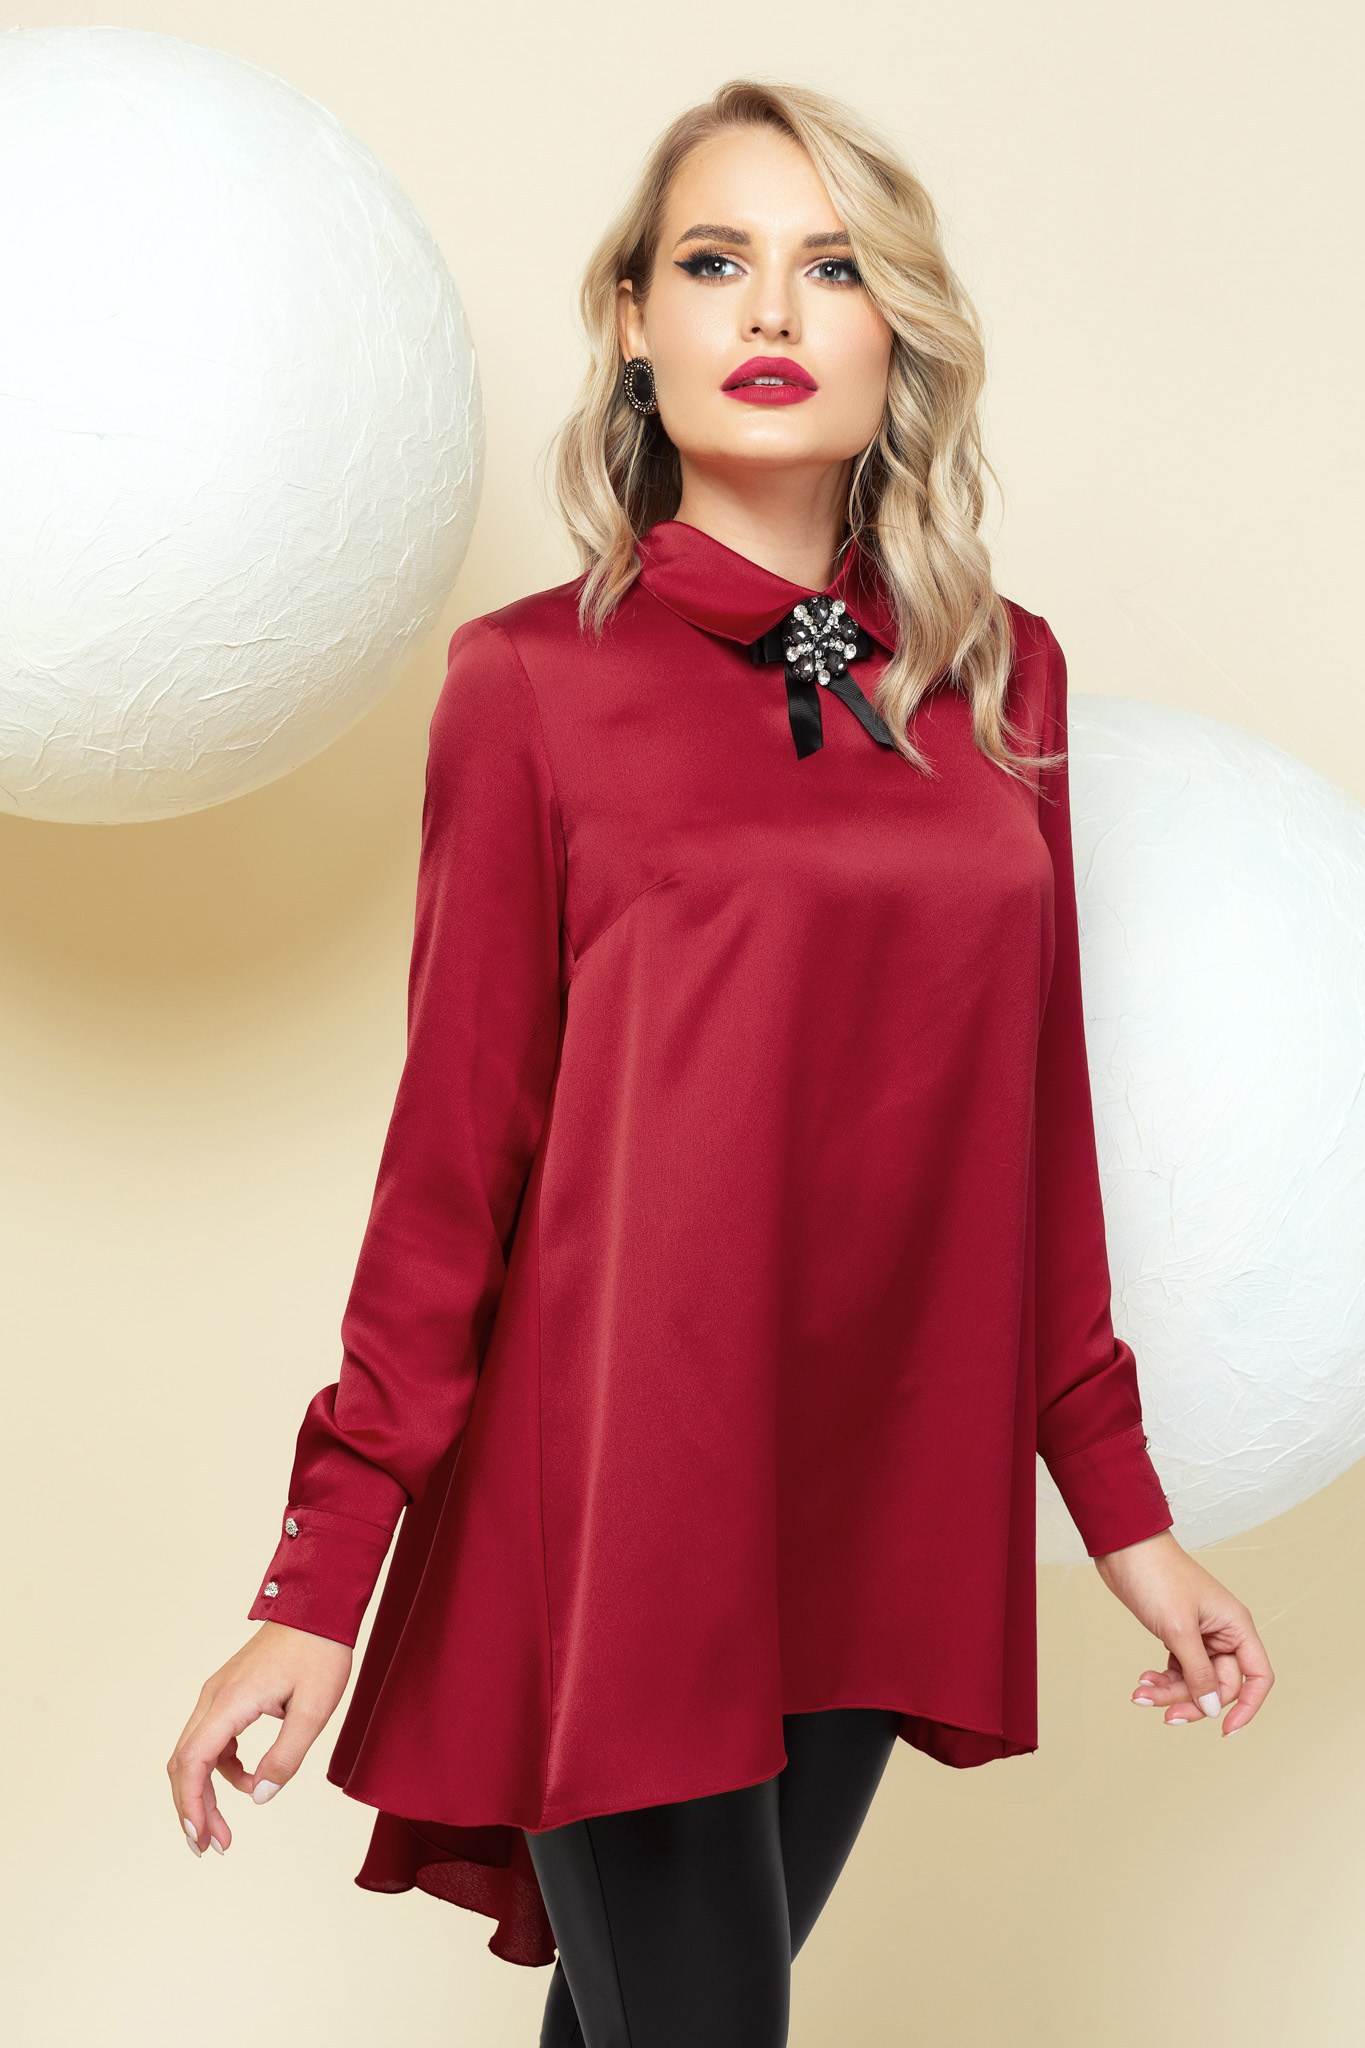 Women`s blouse red from satin occasional asymmetrical accessorized with breastpin flared